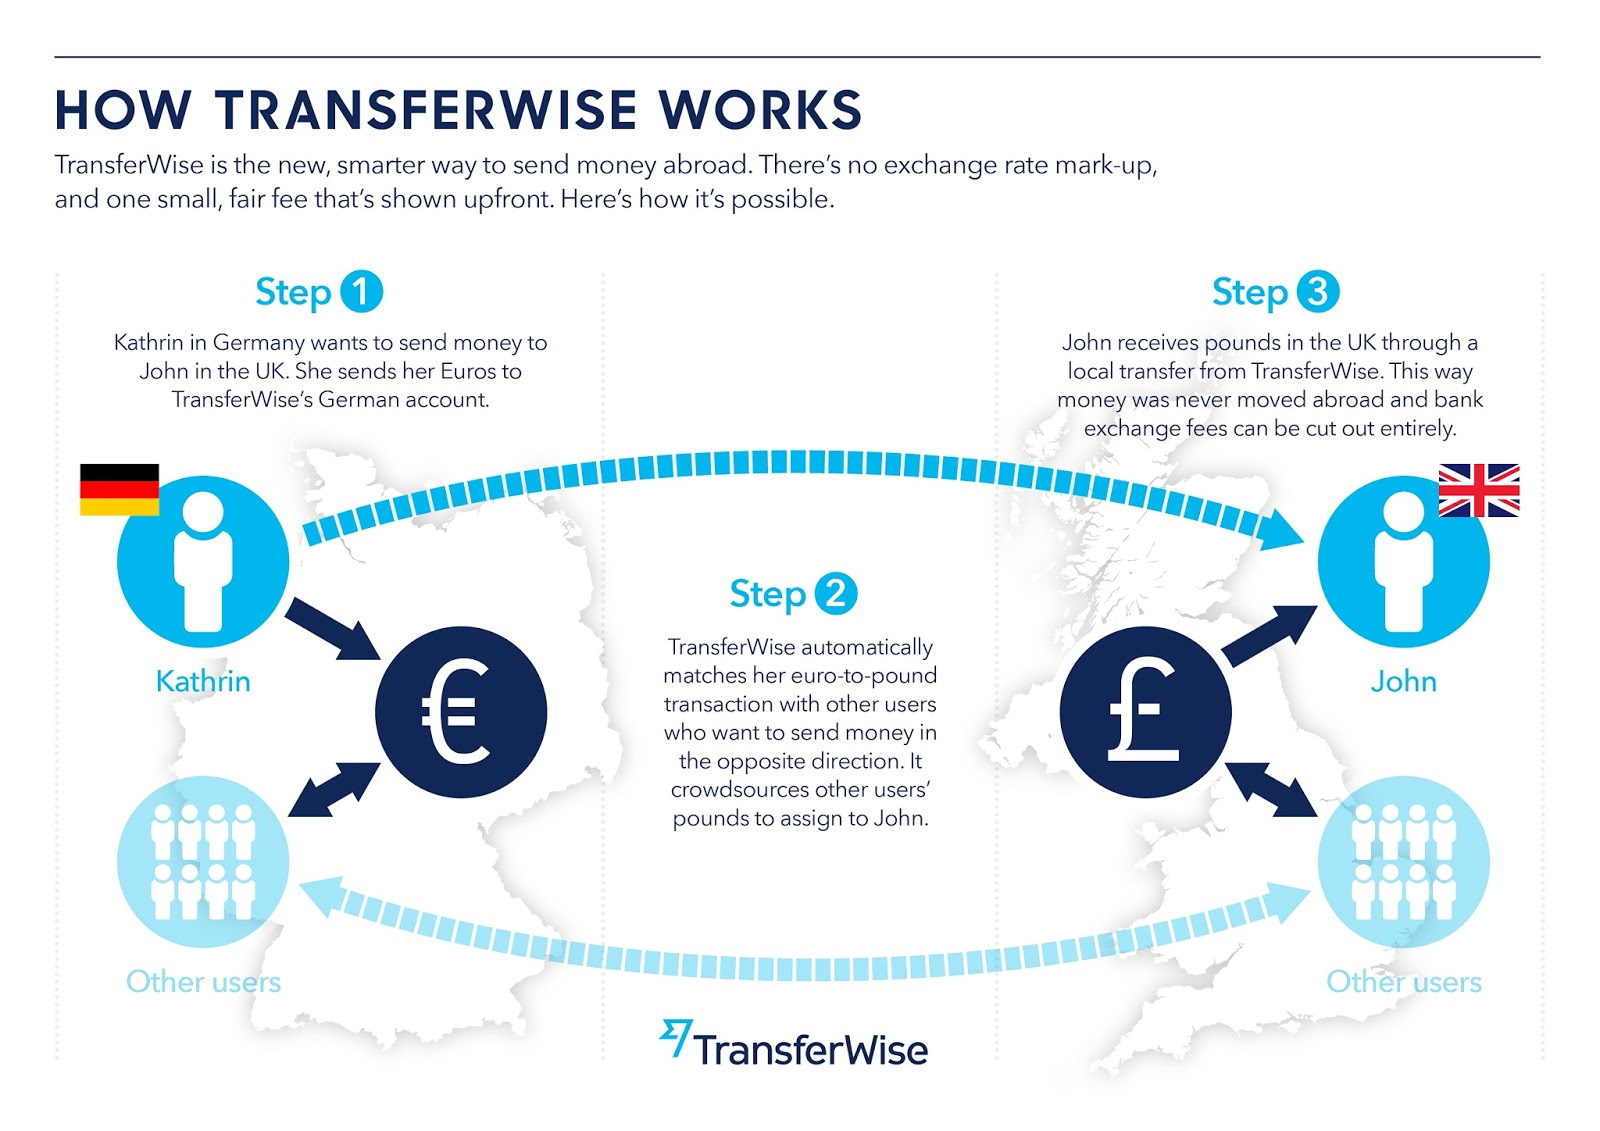 Transferwise Is Completely Transpa About The Total Charge And Gives Mid Market Rate For Customers Unlike Banks Other Money Transfer